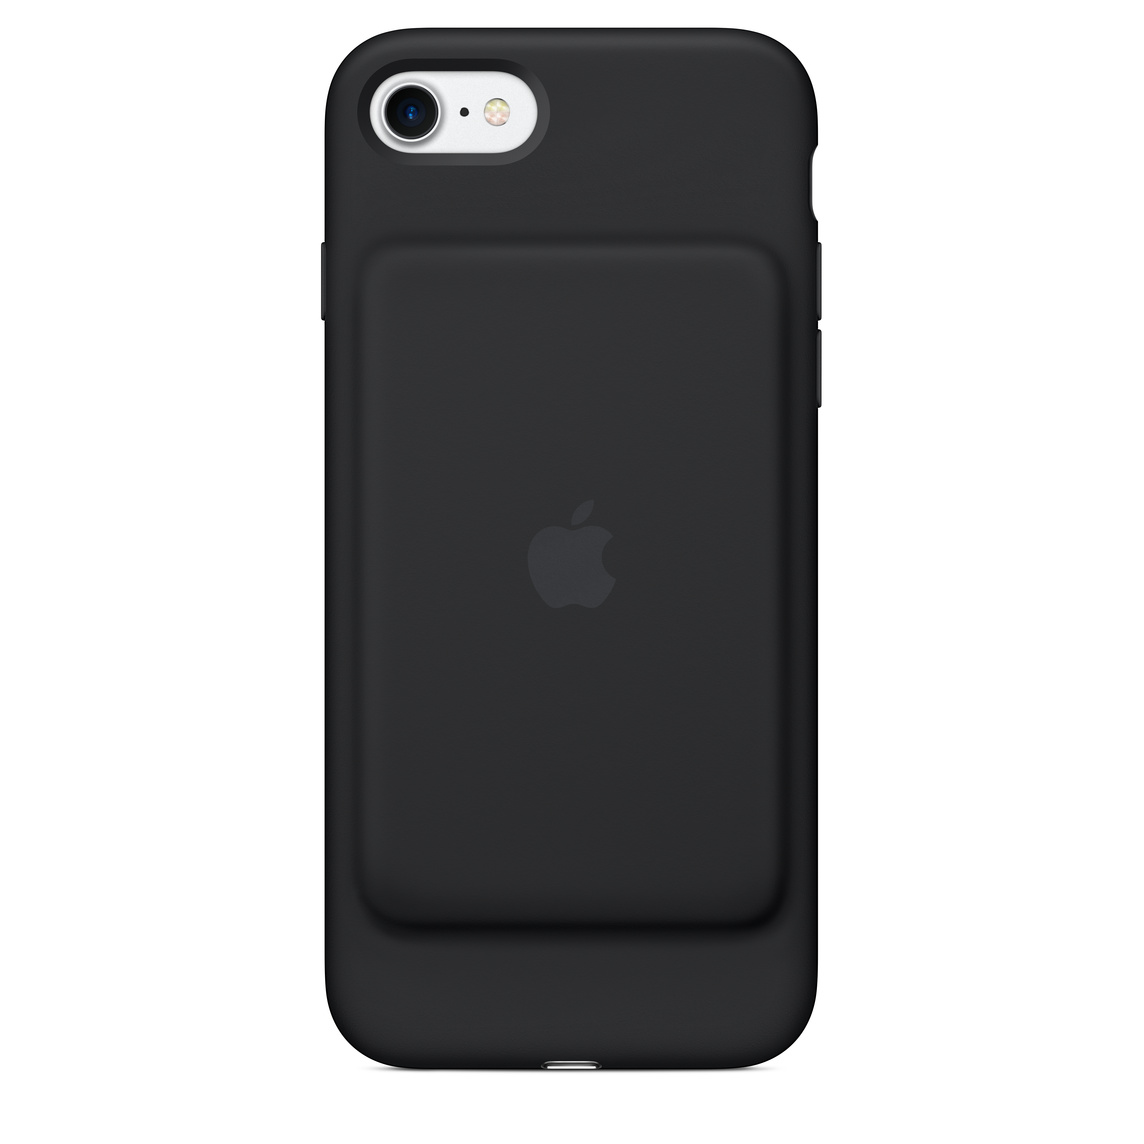 the best attitude 289f1 41386 iPhone 7 Smart Battery Case - Black